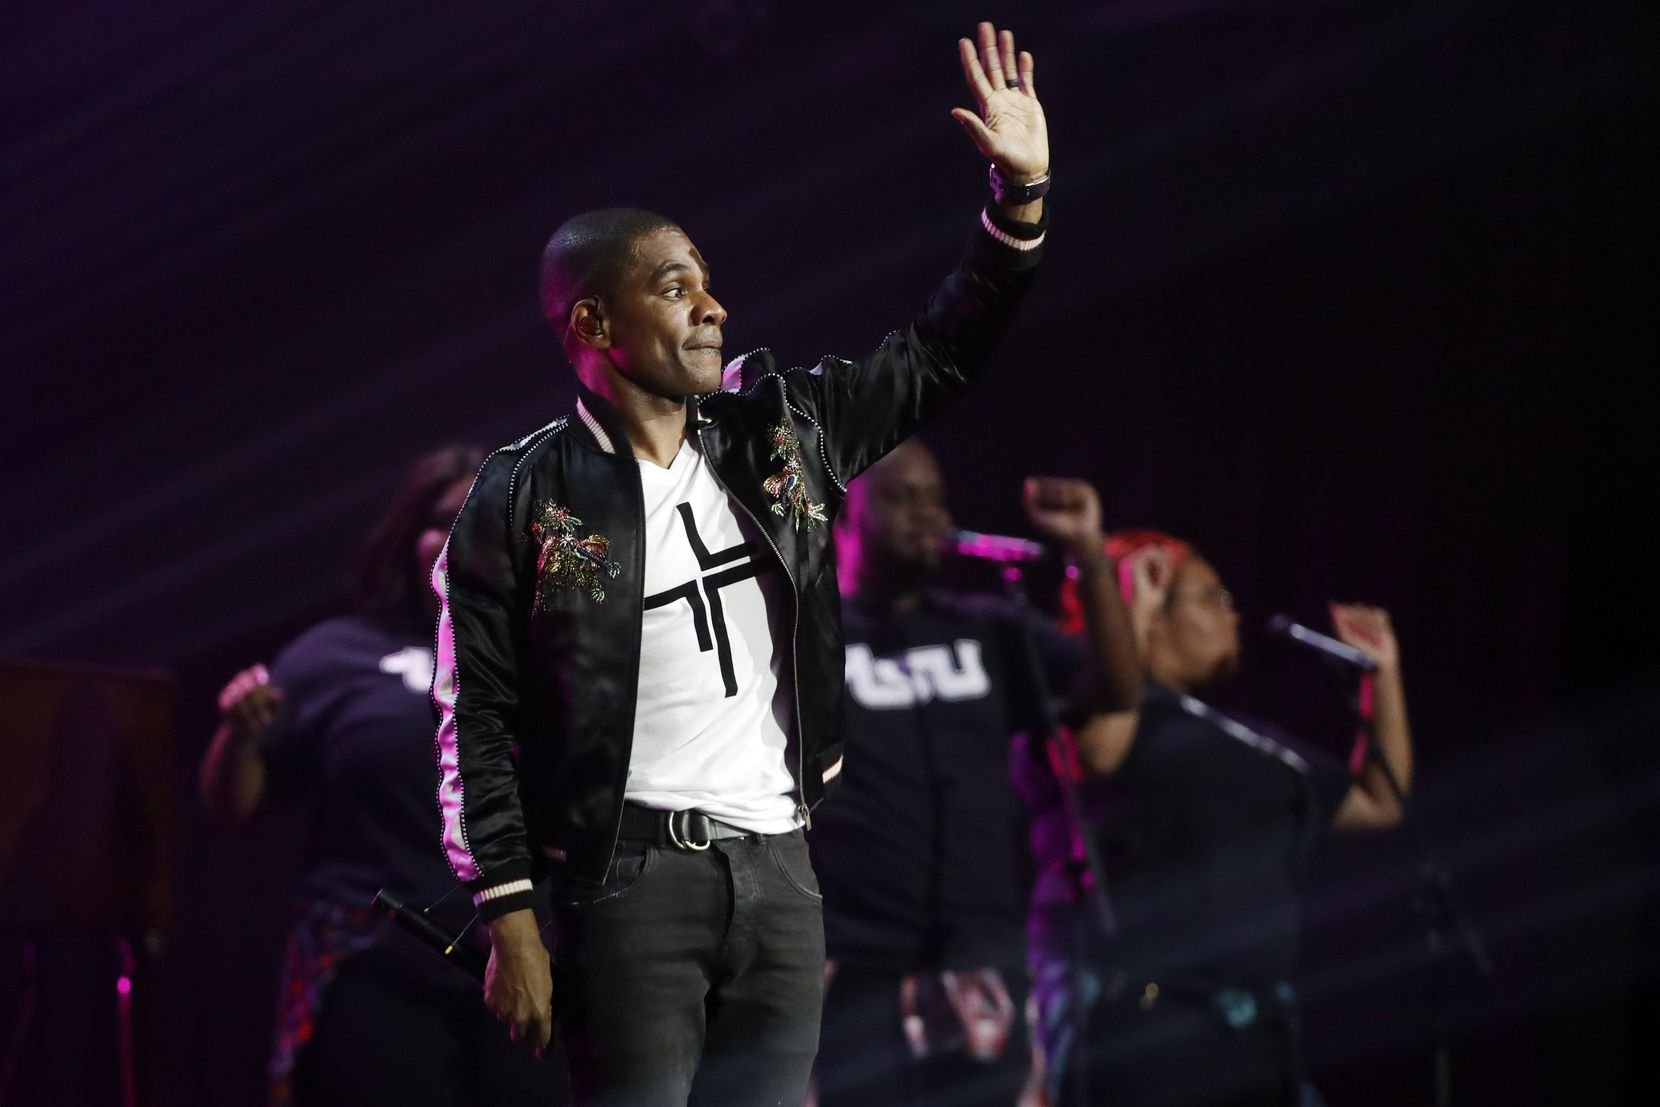 Kirk Franklin performs during the Dove Awards on Tuesday, Oct. 15, 2019, in Nashville, Tenn.